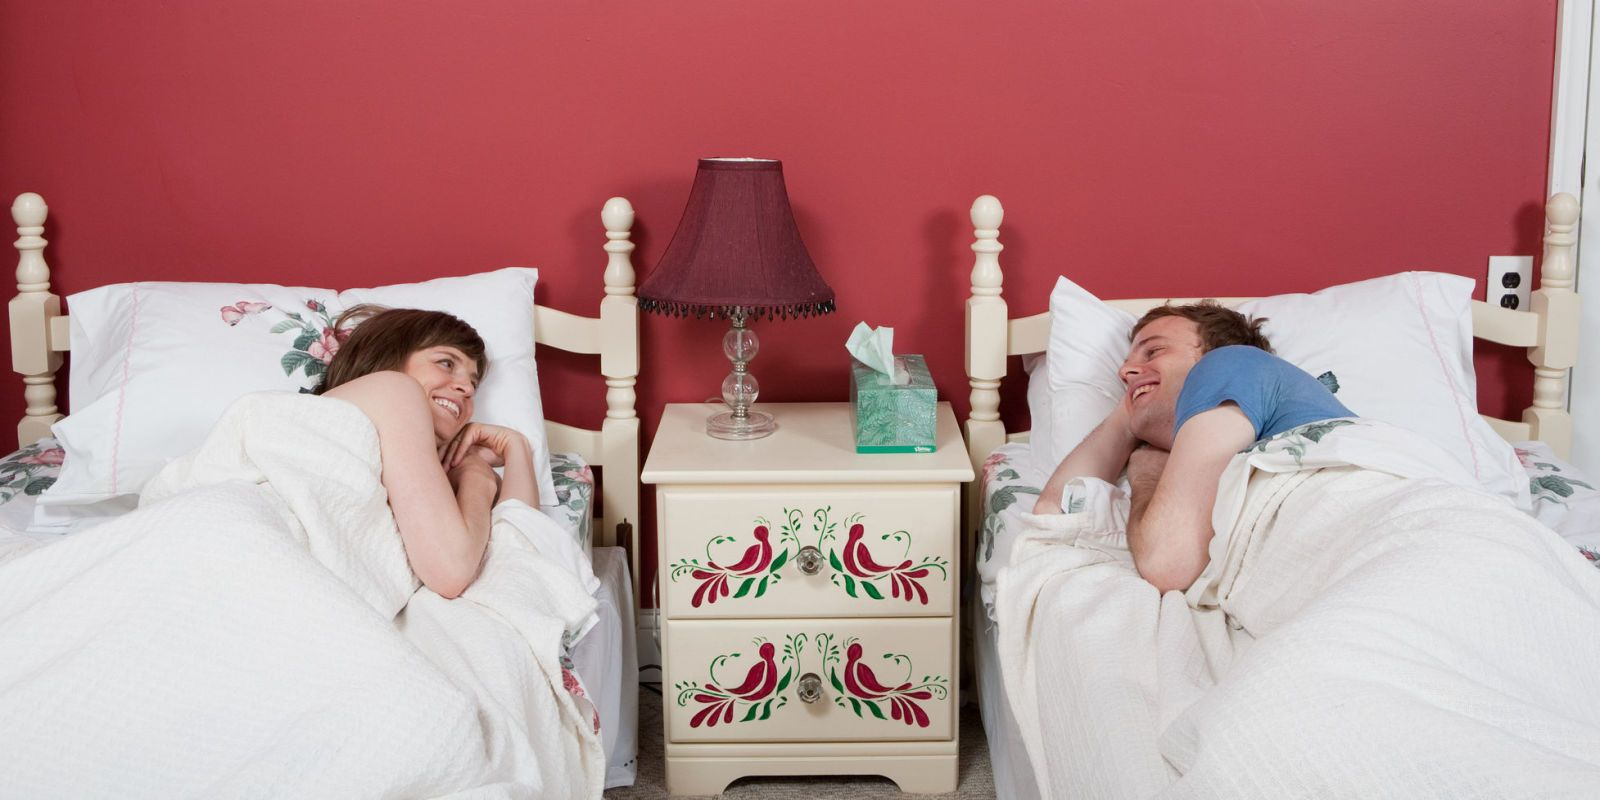 husband and wife sleeping in separate rooms